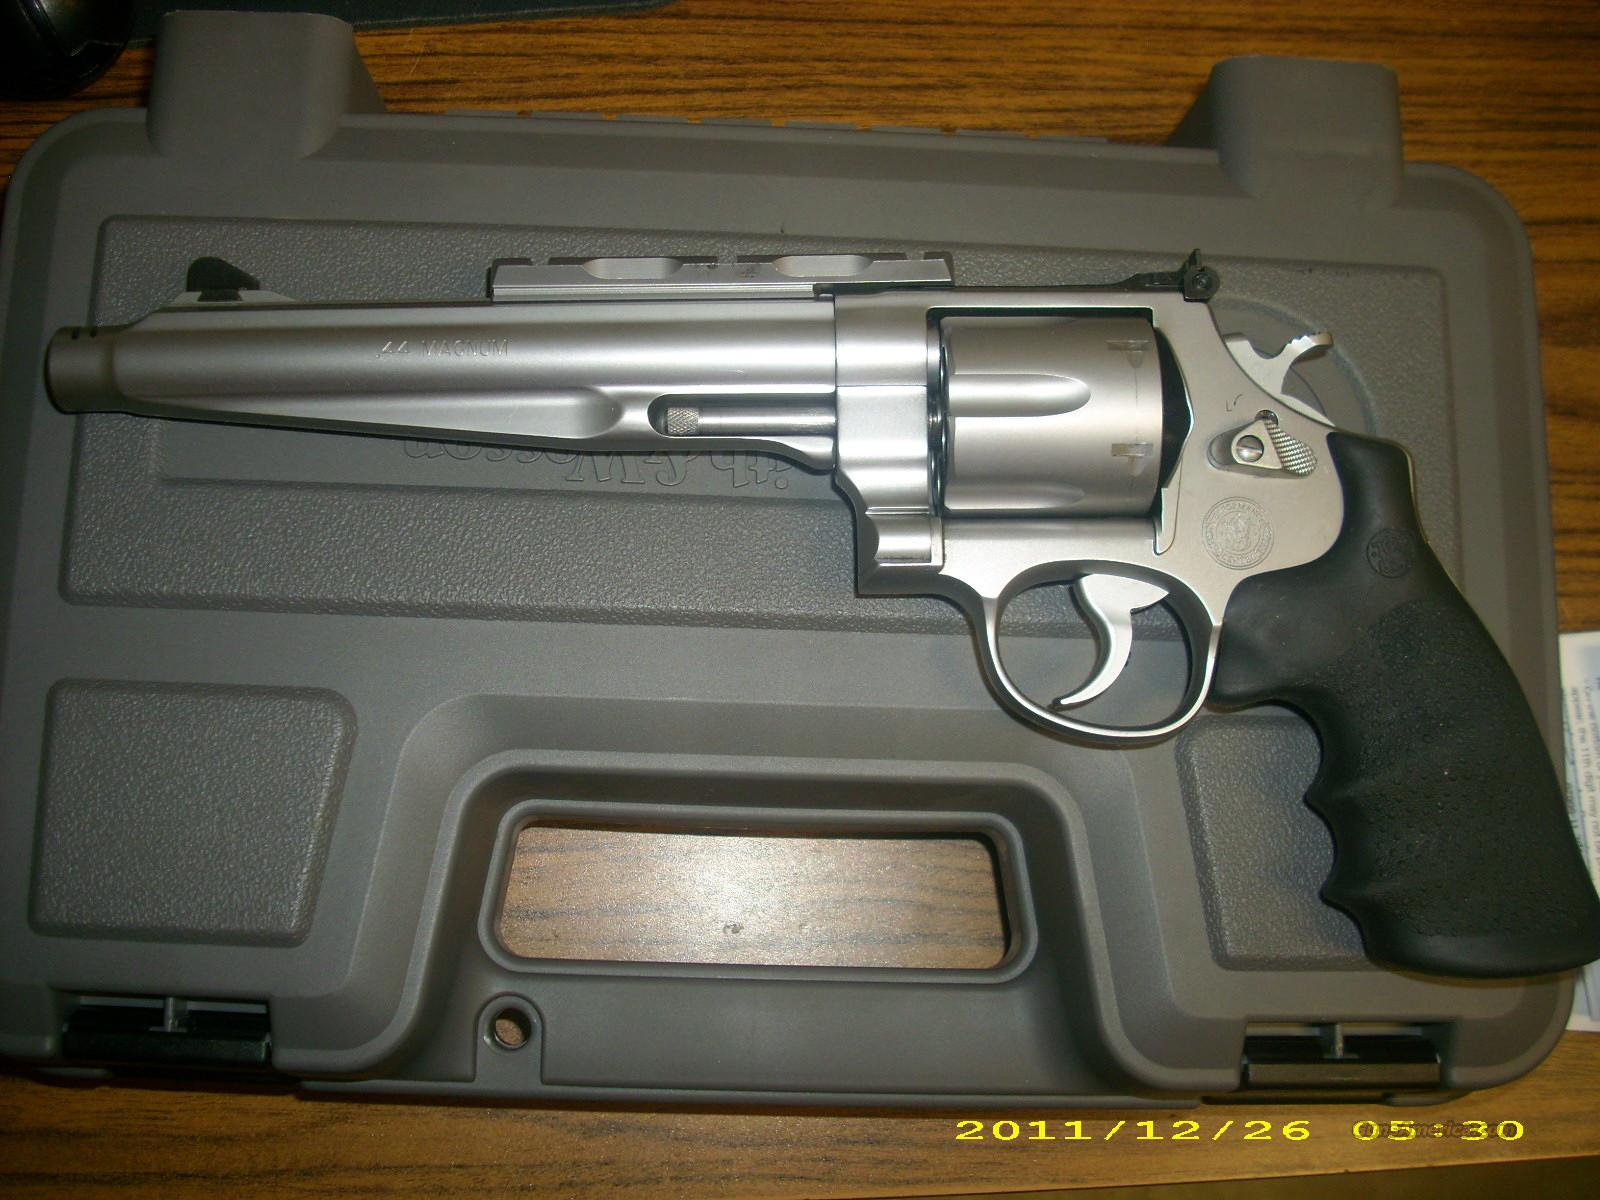 Smith and Wesson Model 629 44 Mag   Guns > Pistols > Smith & Wesson Revolvers > Model 629